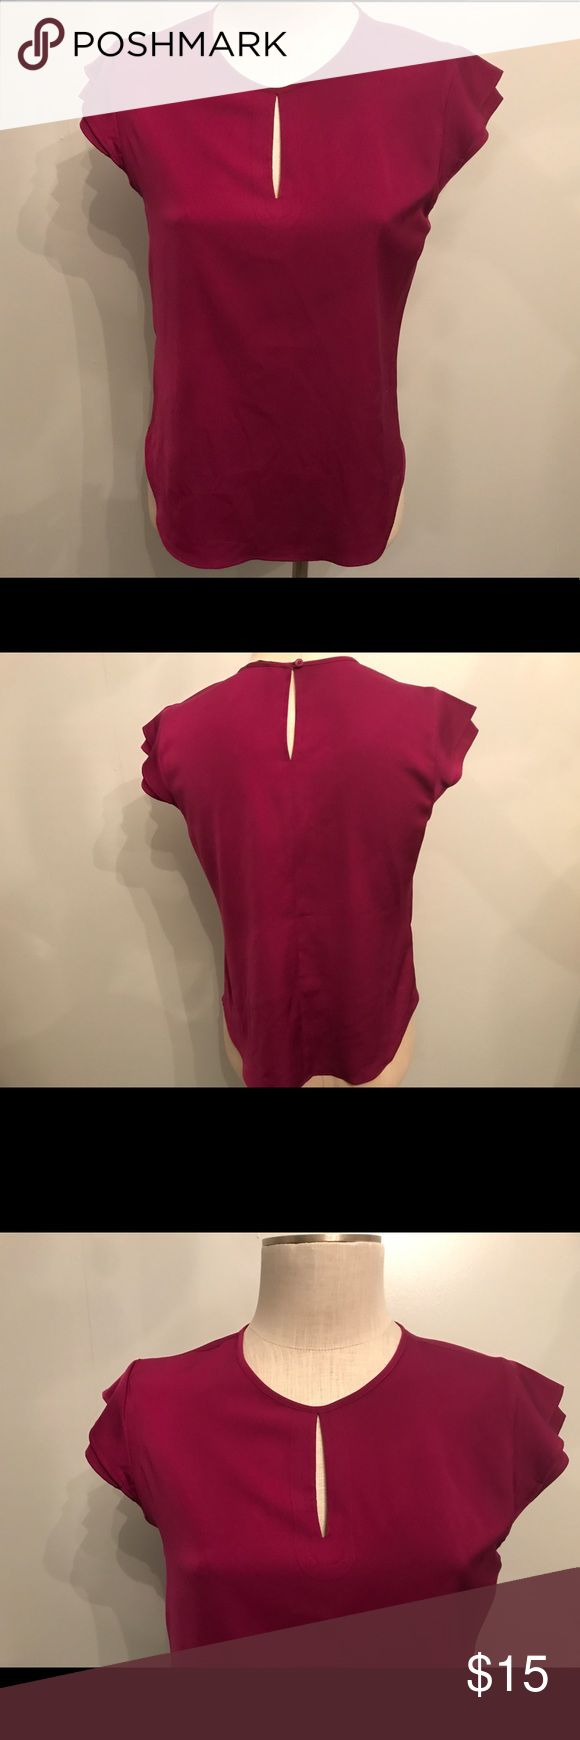 Hot pink blouse - Ann Taylor Small Hot pink short-sleeved blouse by Ann Taylor size small! Excellent condition! Ann Taylor Tops Blouses